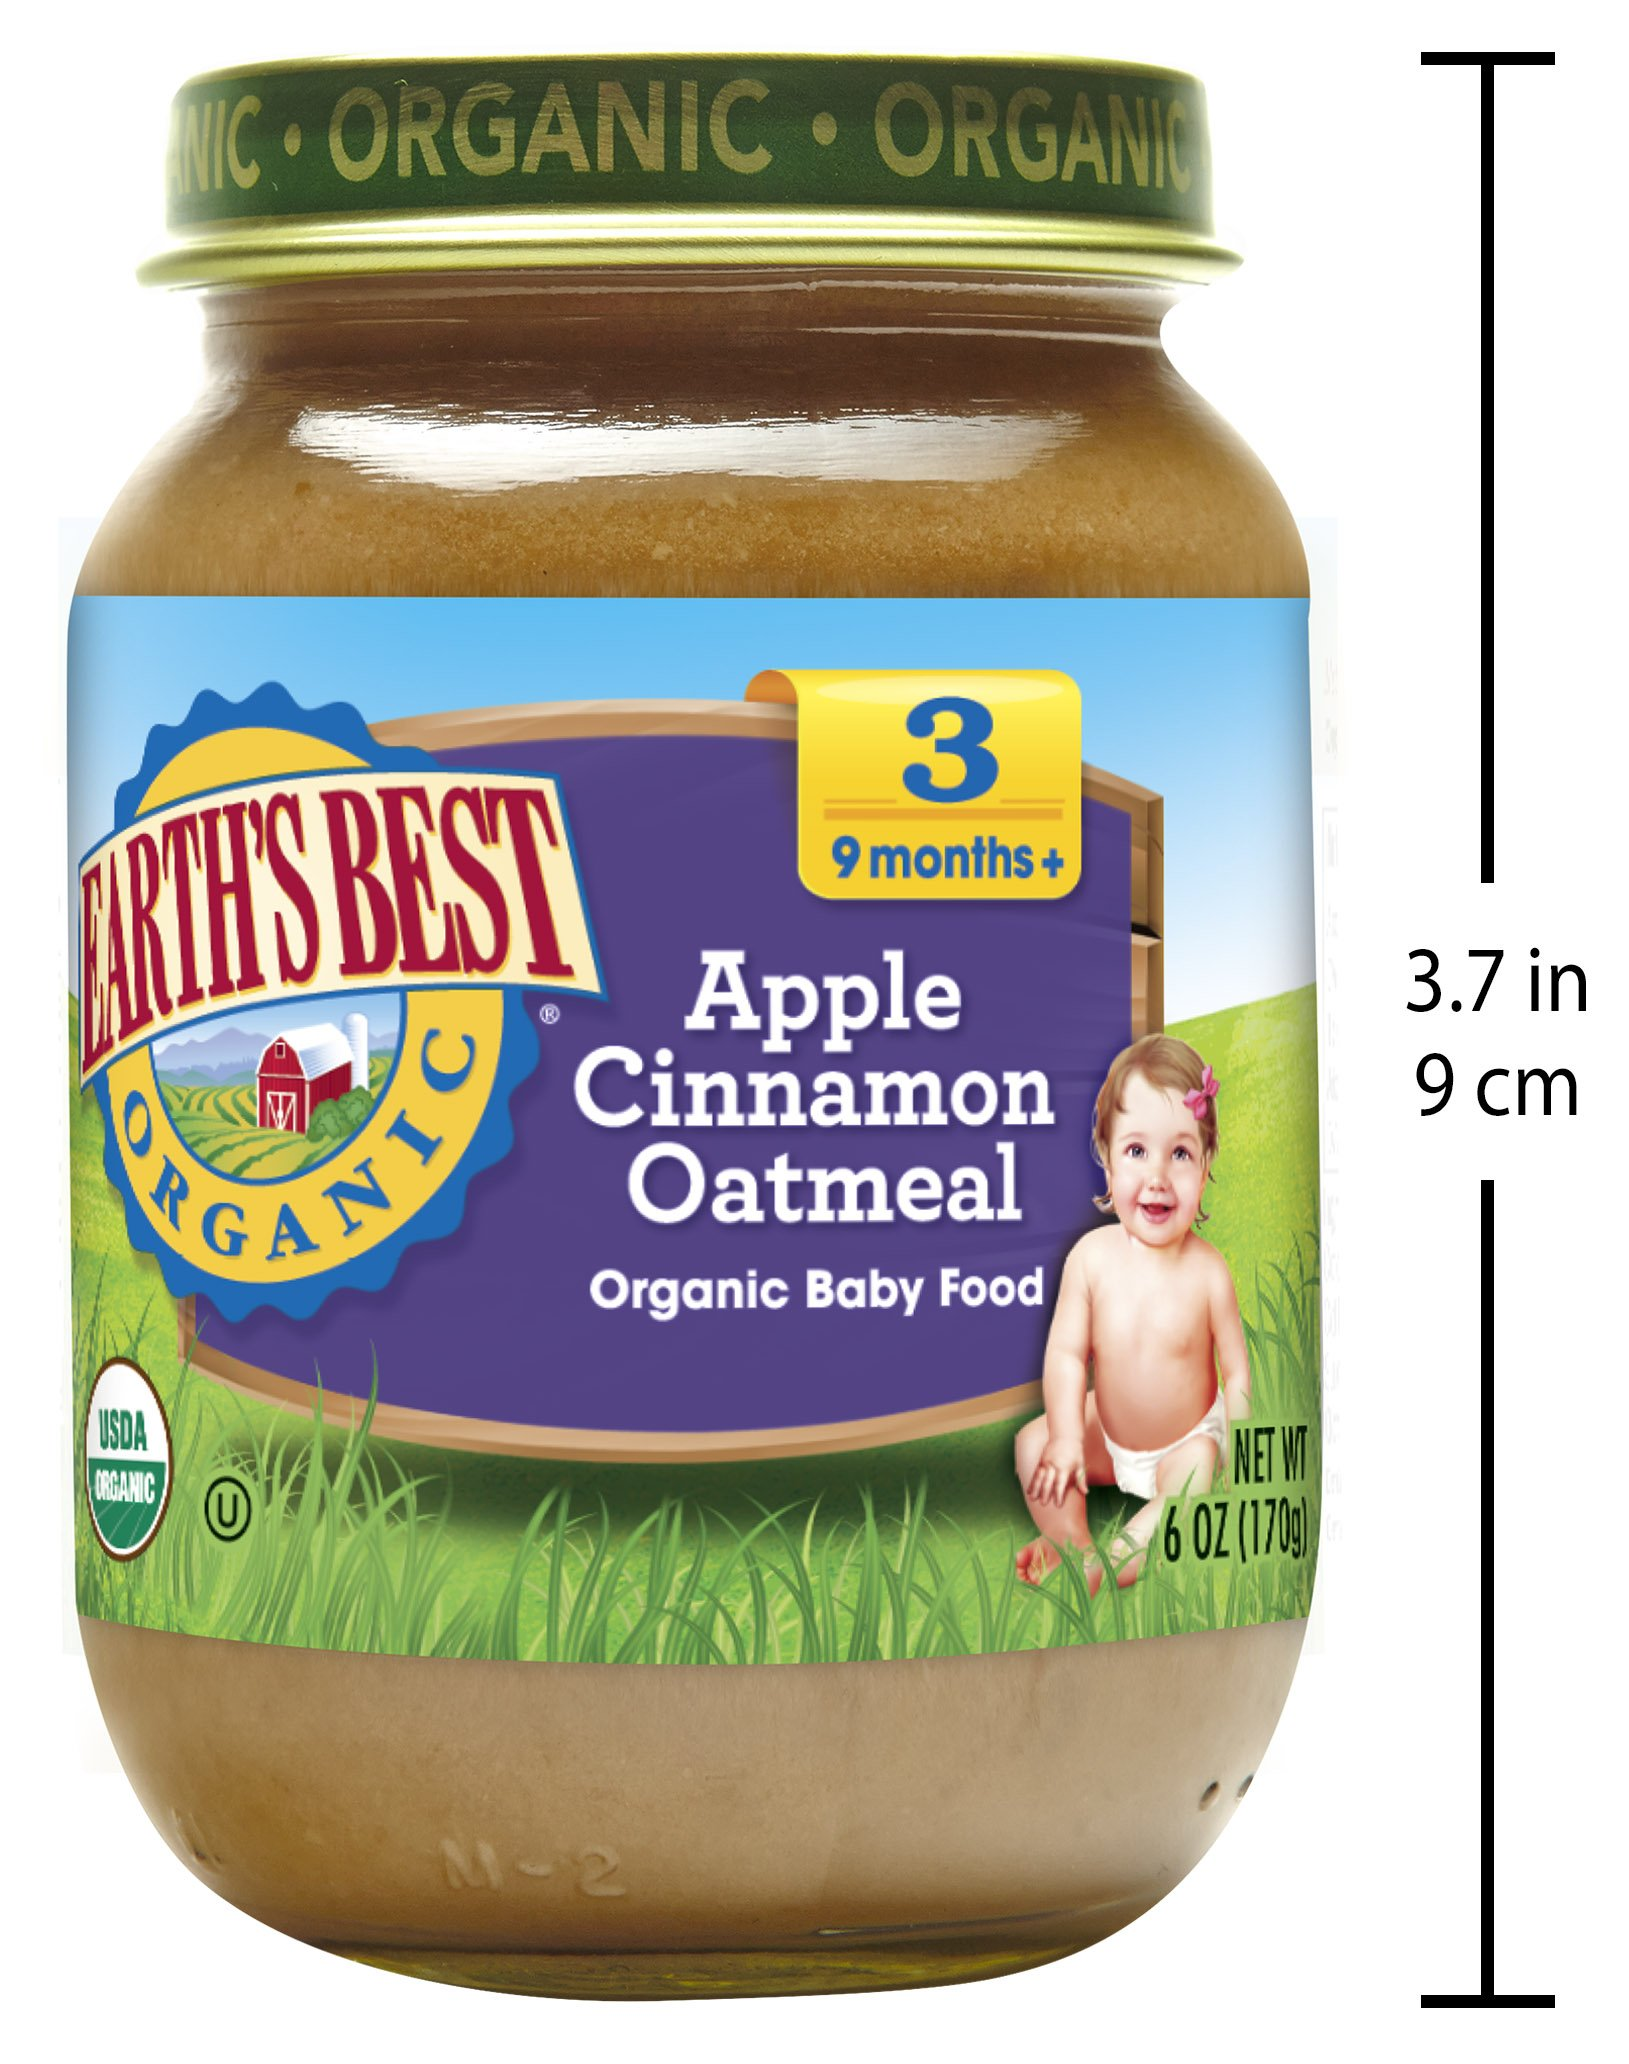 Earth's Best Organic Stage 3, Apple, Cinnamon & Oatmeal, 6 Ounce Jar (Pack of 12) by Earth's Best (Image #4)